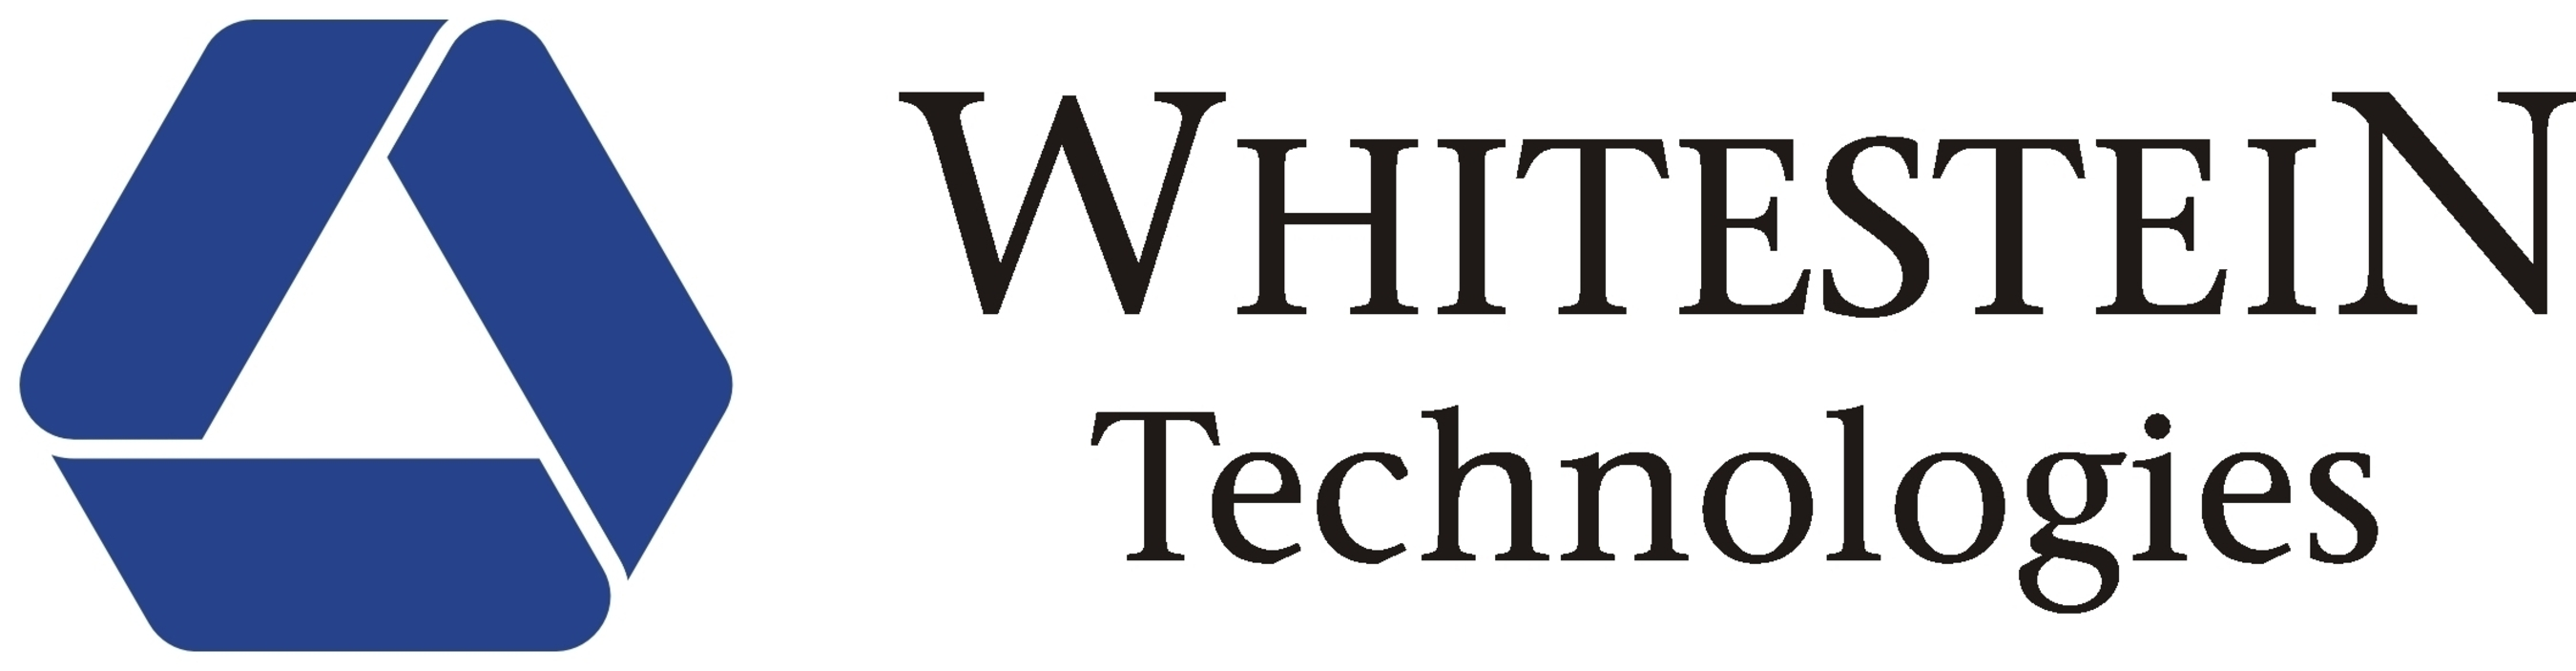 Whitestein Releases LSPS 3.0, with a Free Cloud Evaluation - a Disruptive Rapid Application Development Platform for BPM and ACM Intelligent Business Operations